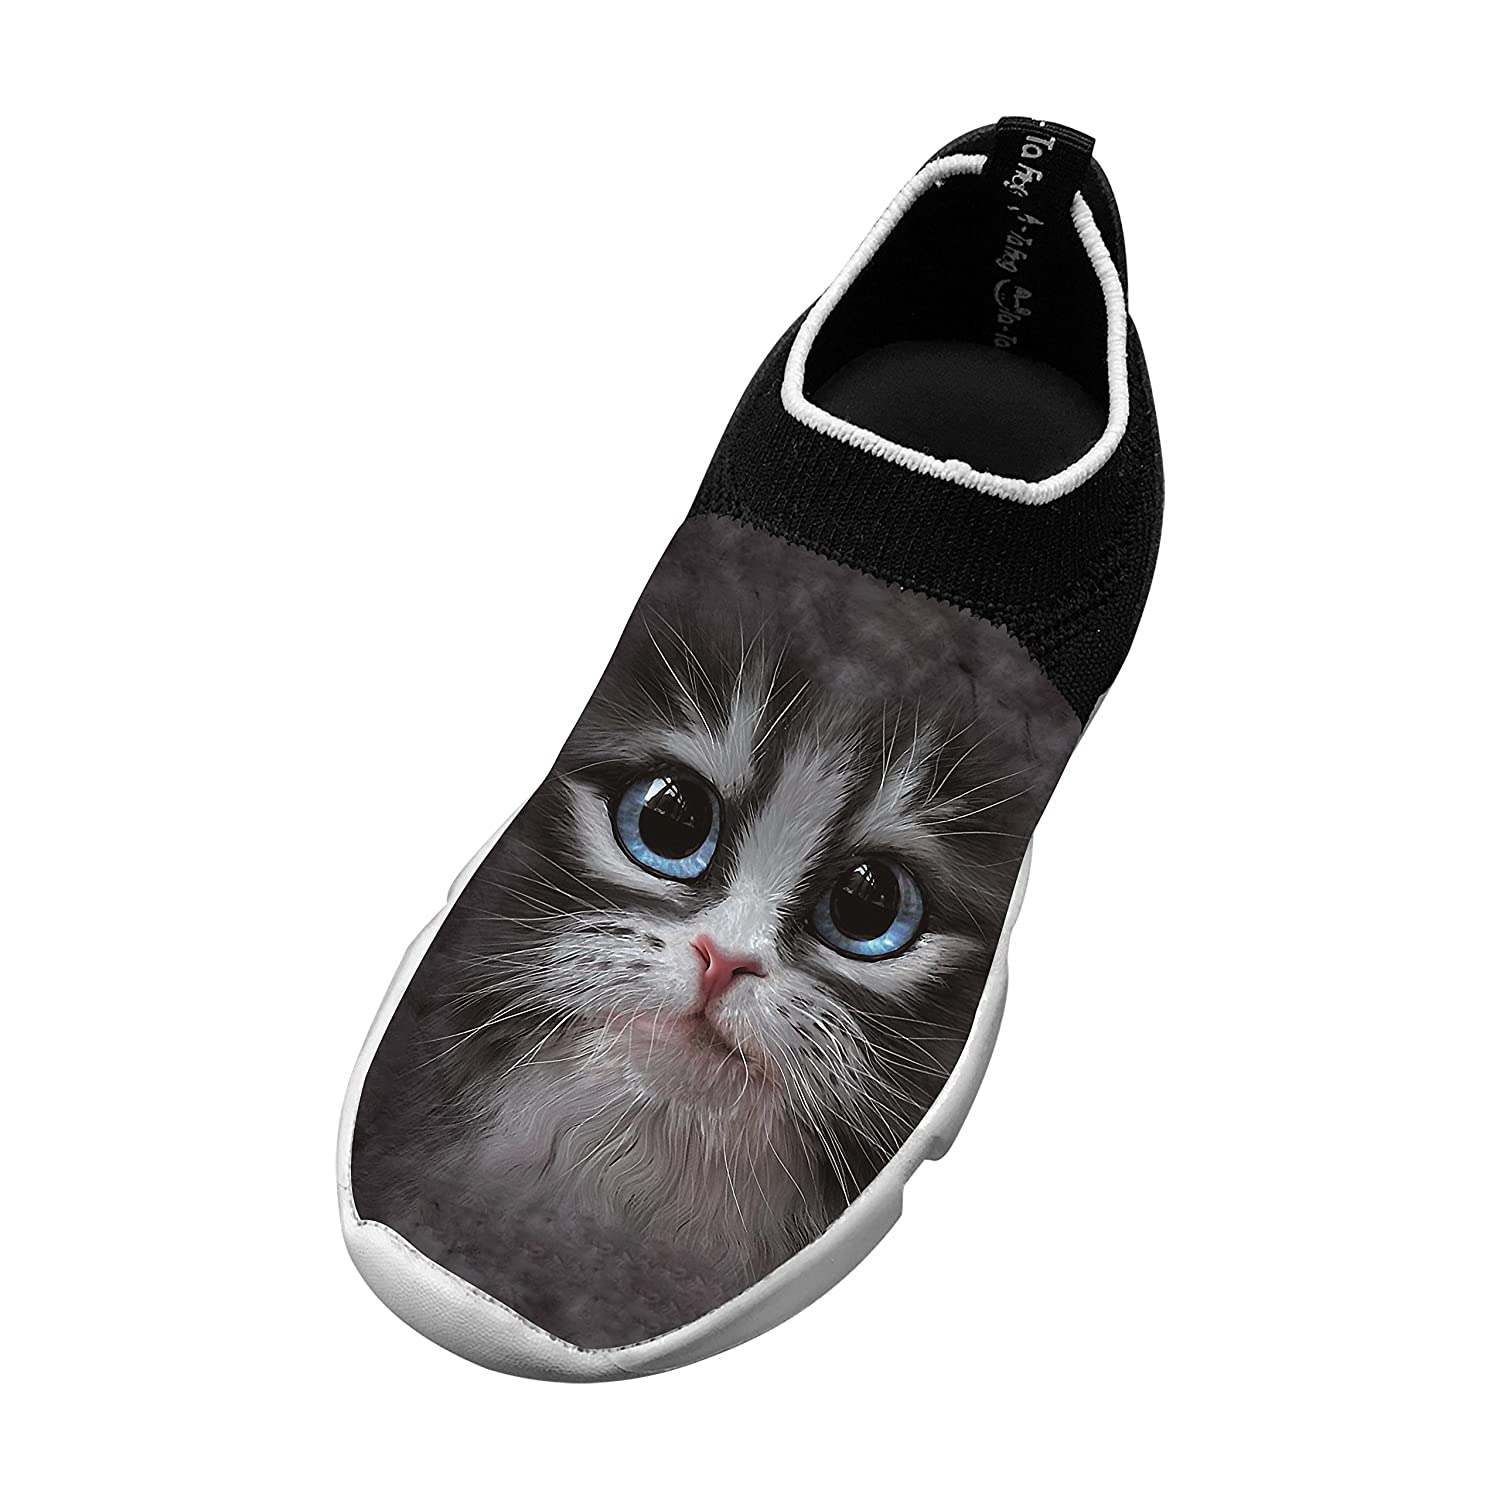 New Fashion Flywire Weaving Gym shoes 3D Design With Cutie Pie Kitten Face For Boys Girls